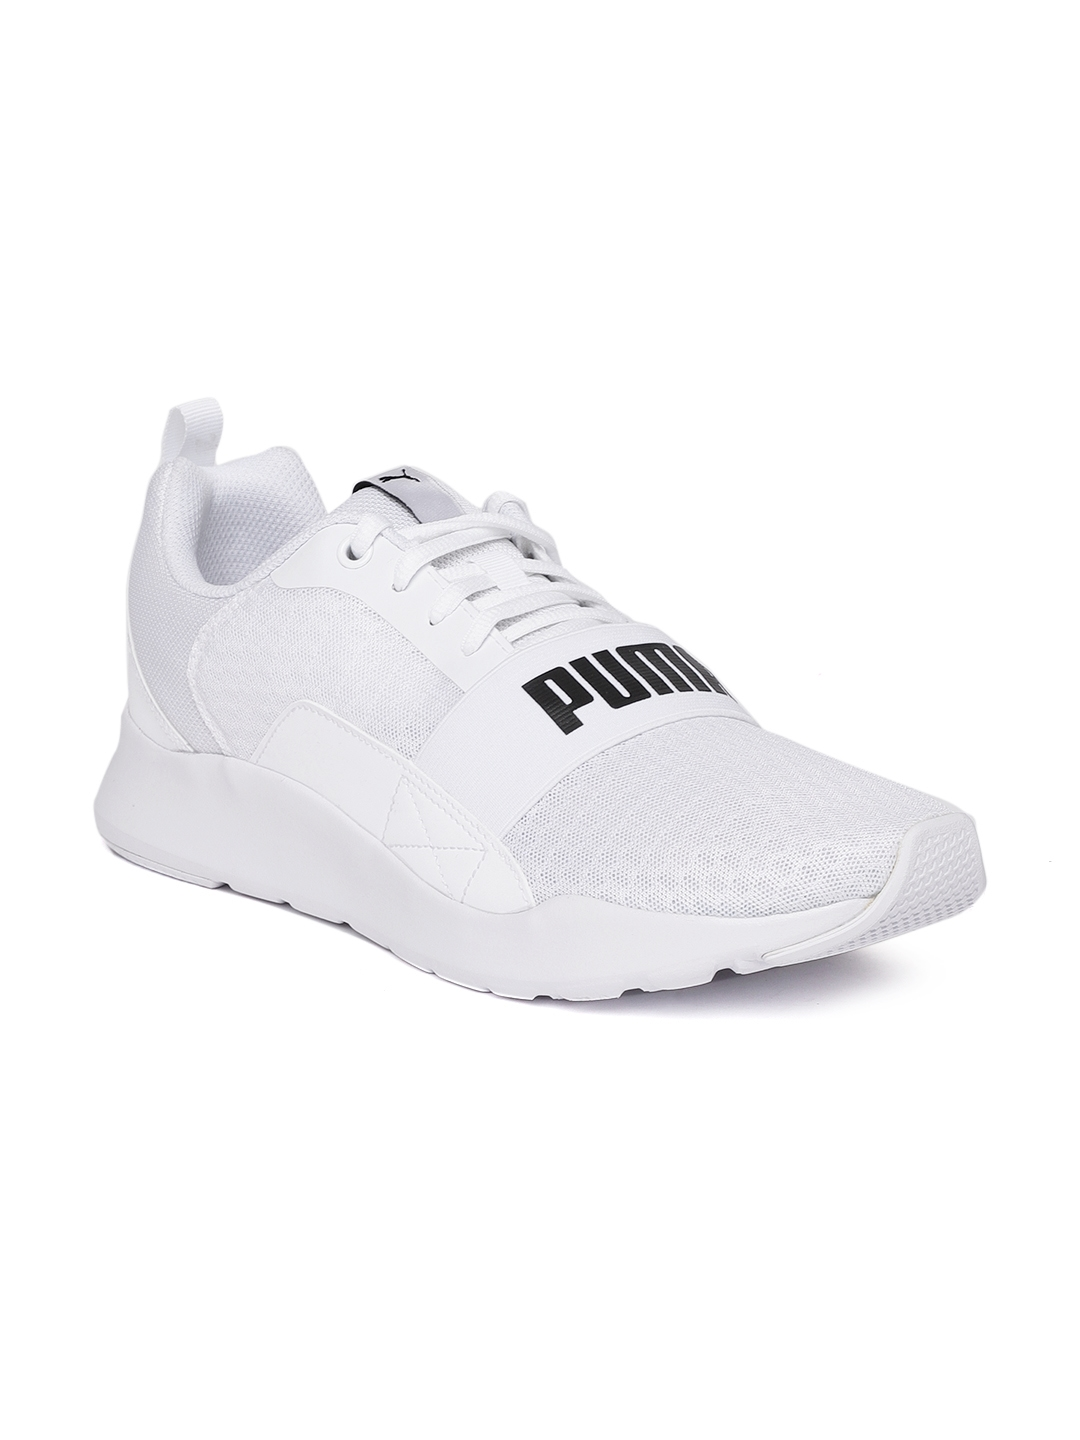 50c17d691864 Buy Puma Men White Wired Casual Sneakers - Casual Shoes for Men ...